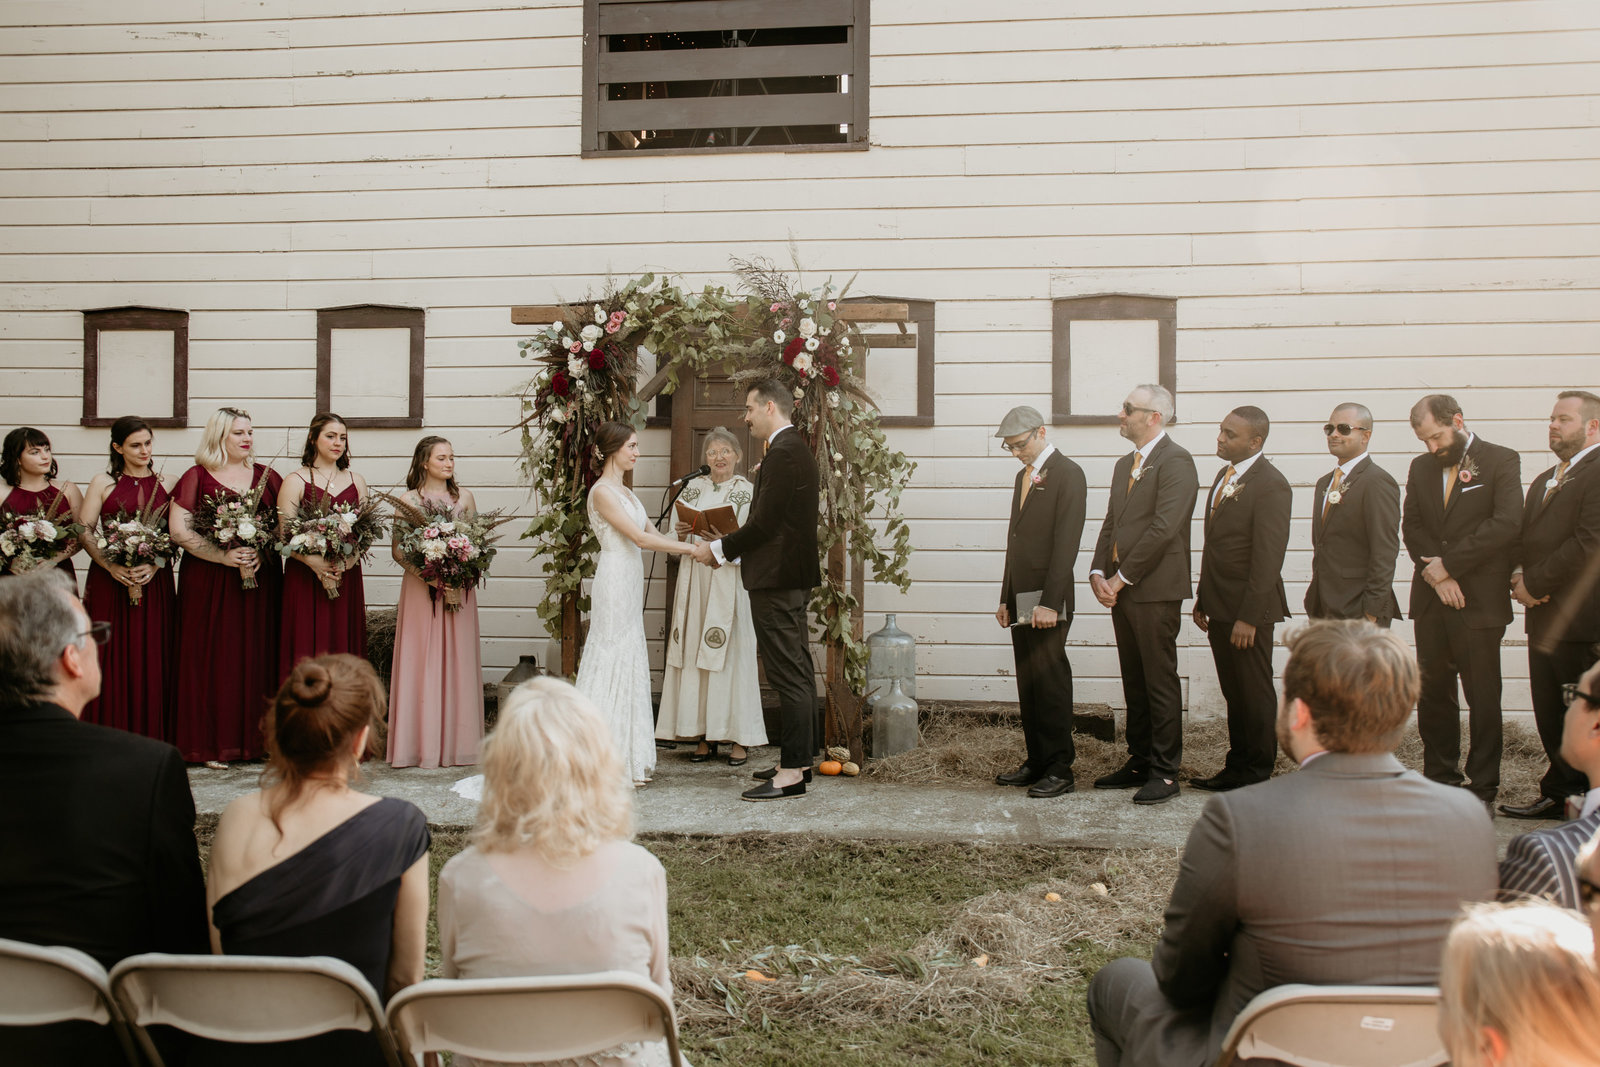 Wedding ceremony in Catskill, New York.